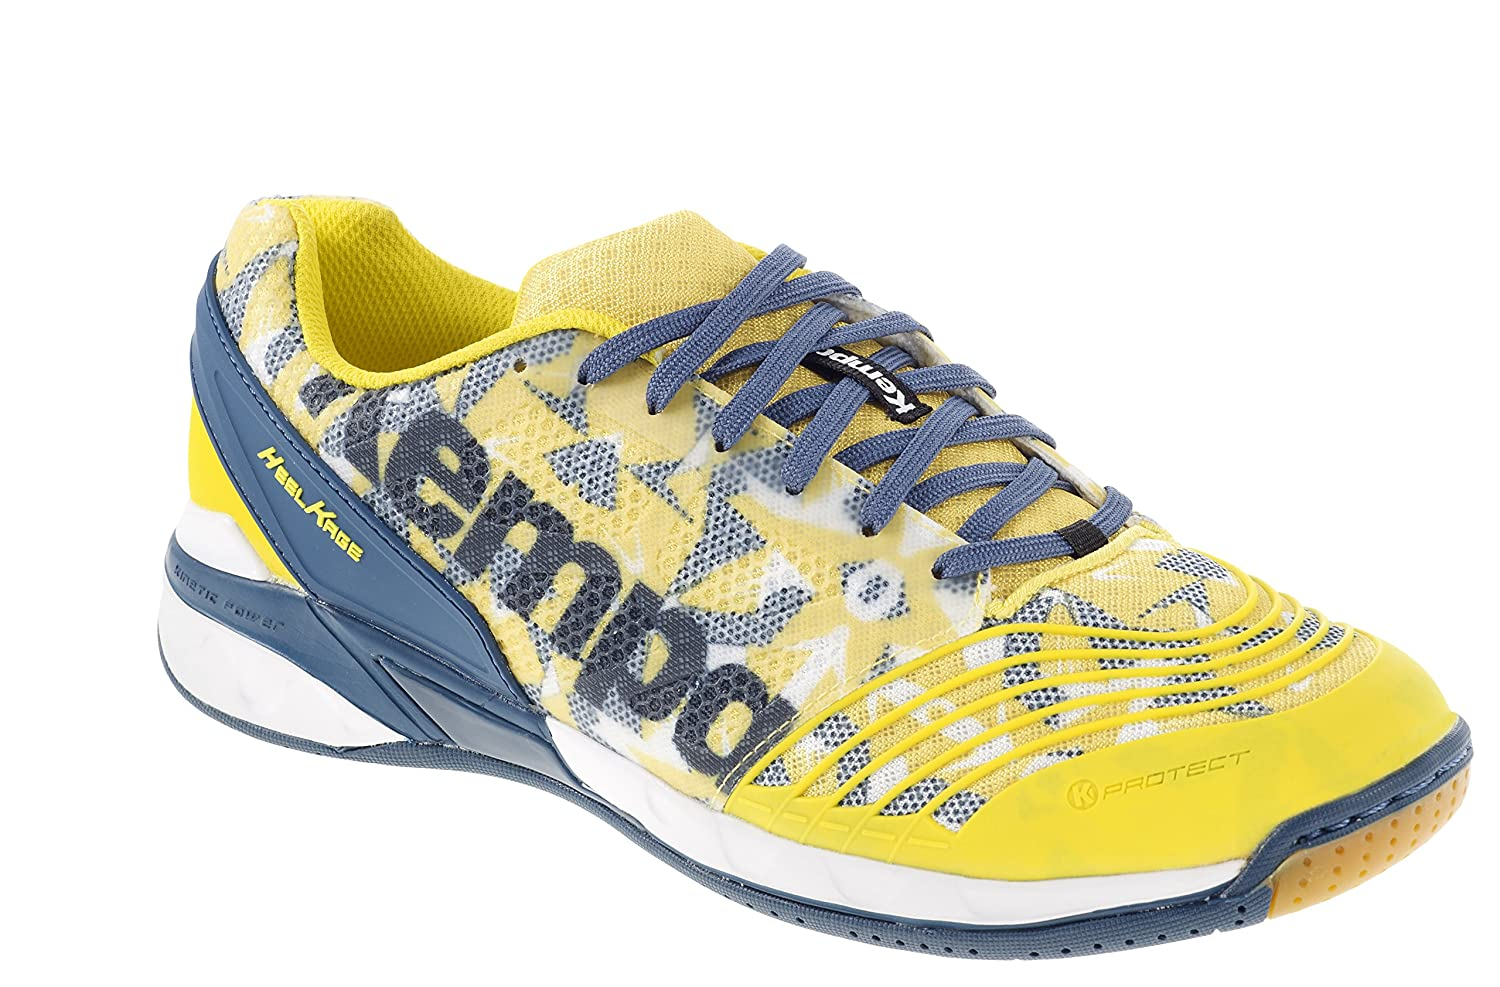 Kempa Attack One Zapatillas de Balonmano Unisex Adulto